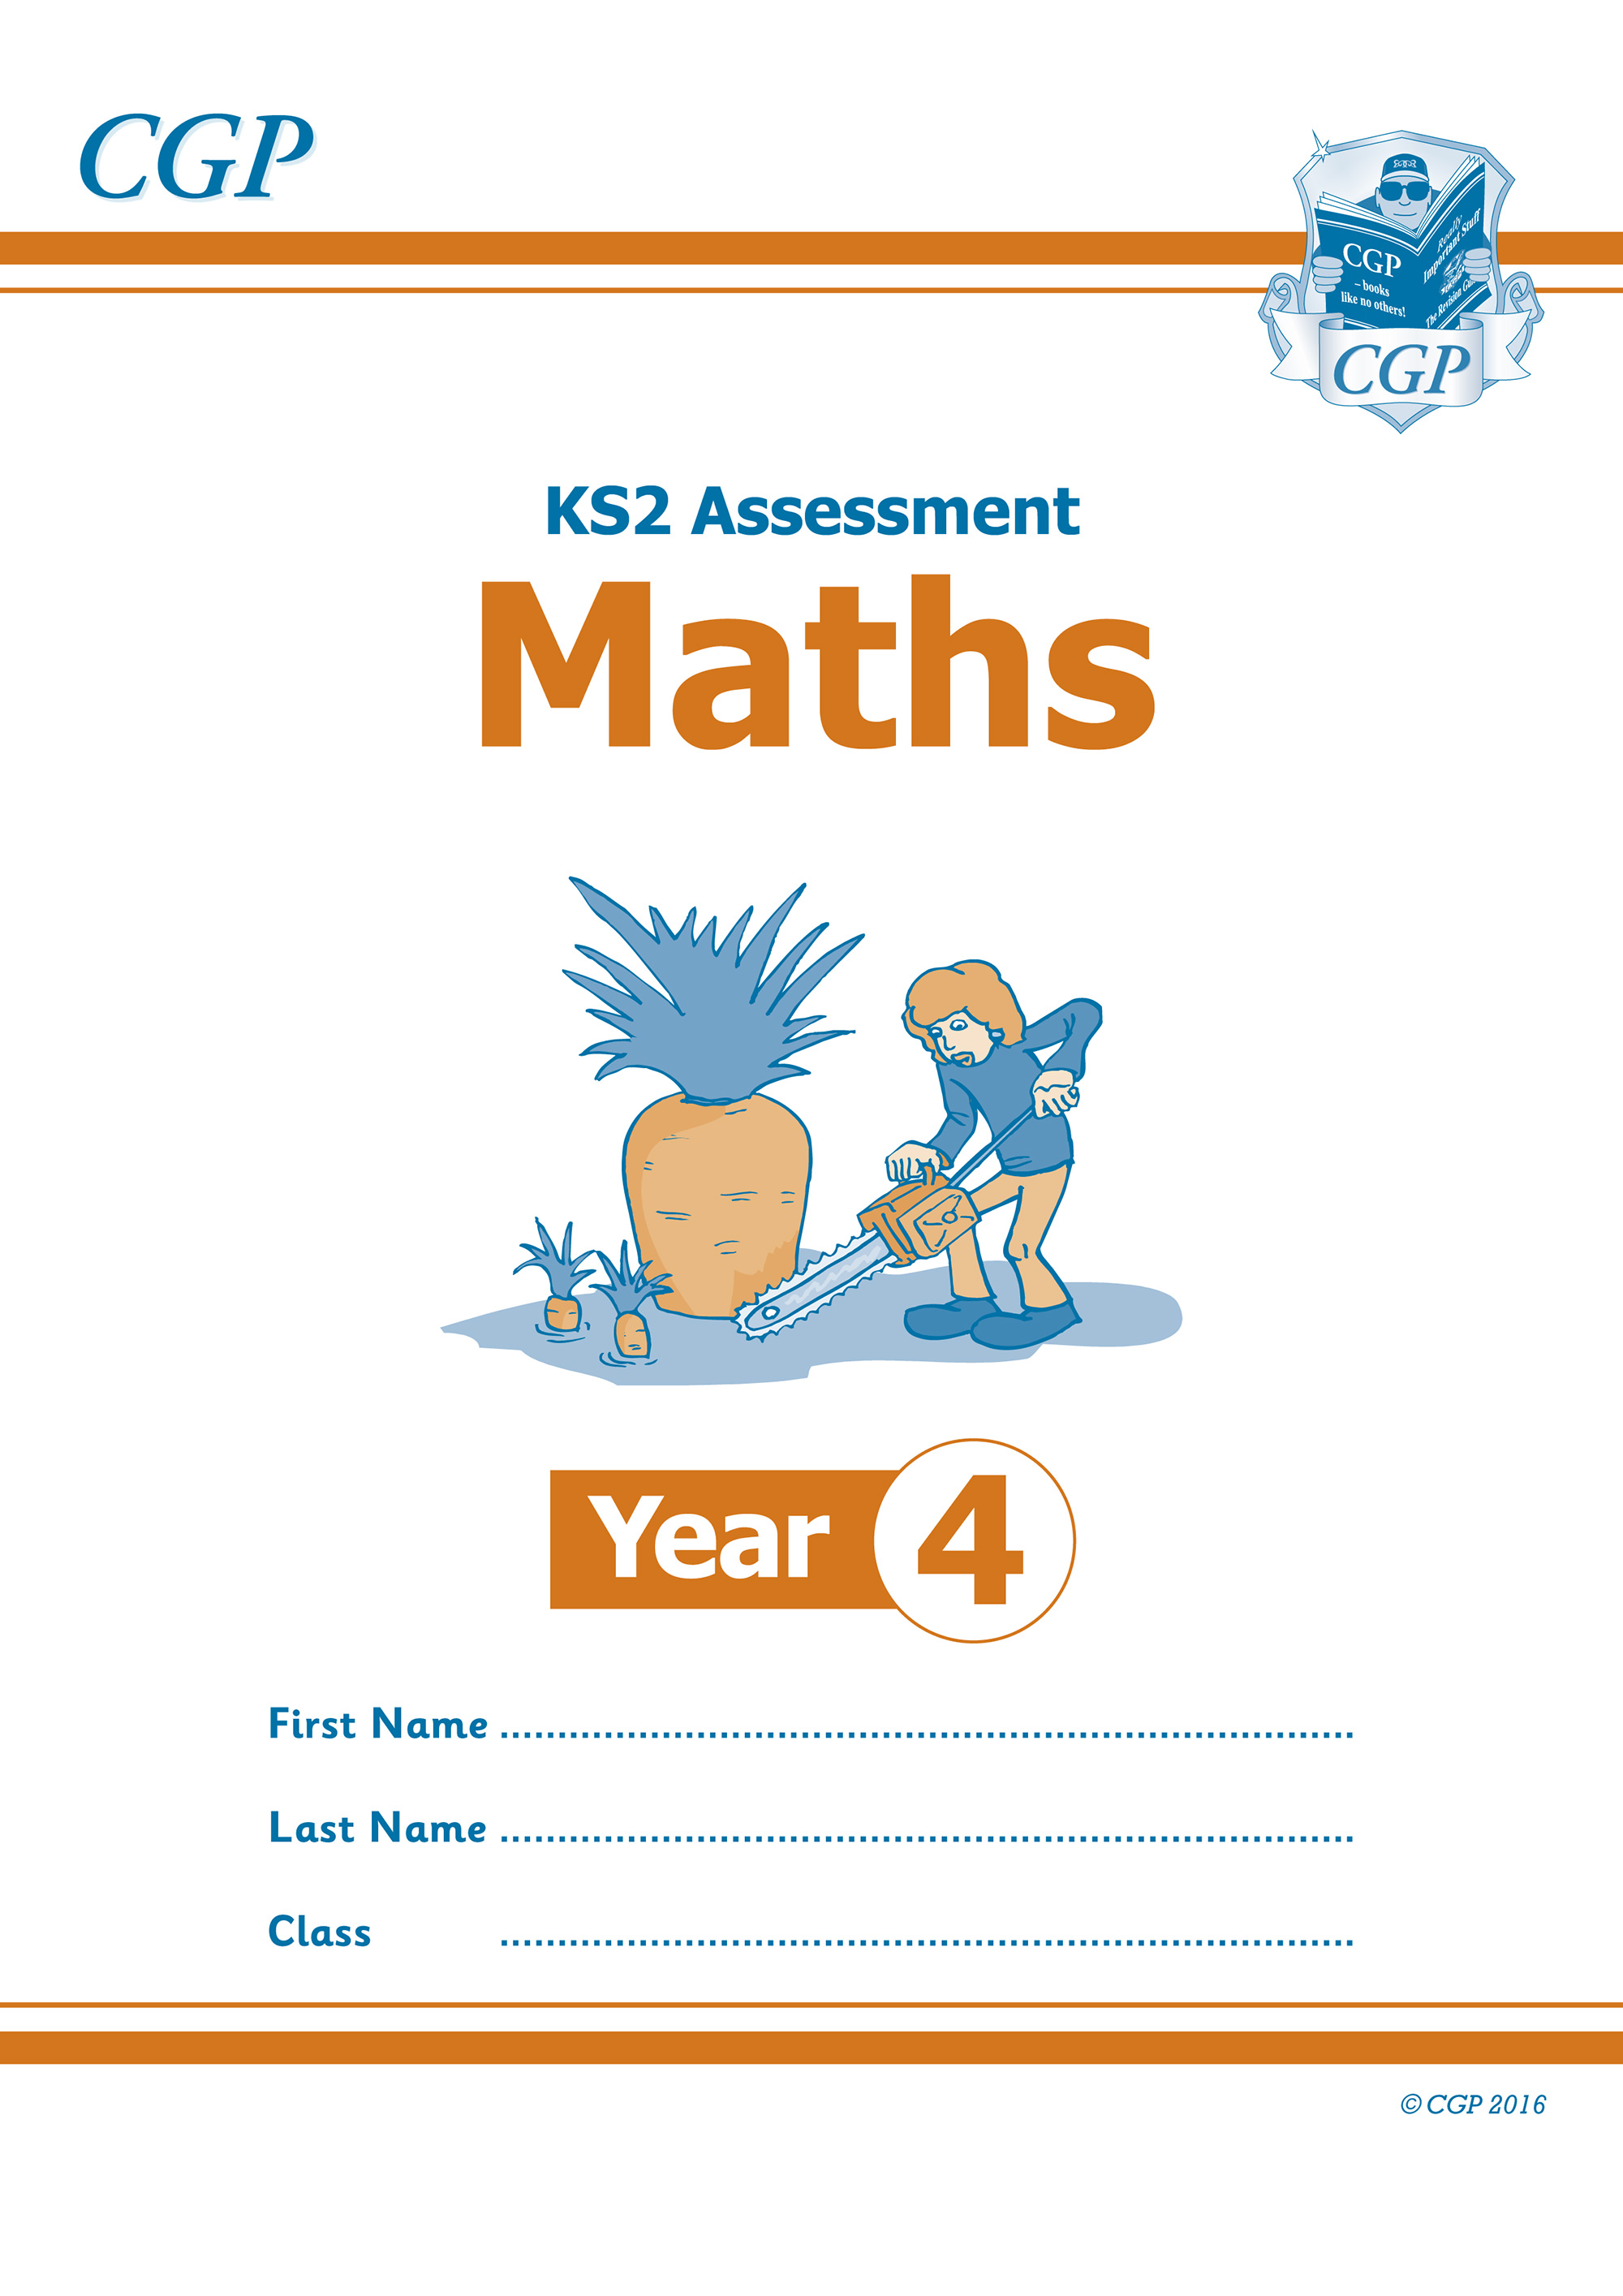 M4P21 - KS2 Assessment: Maths - Year 4 Test